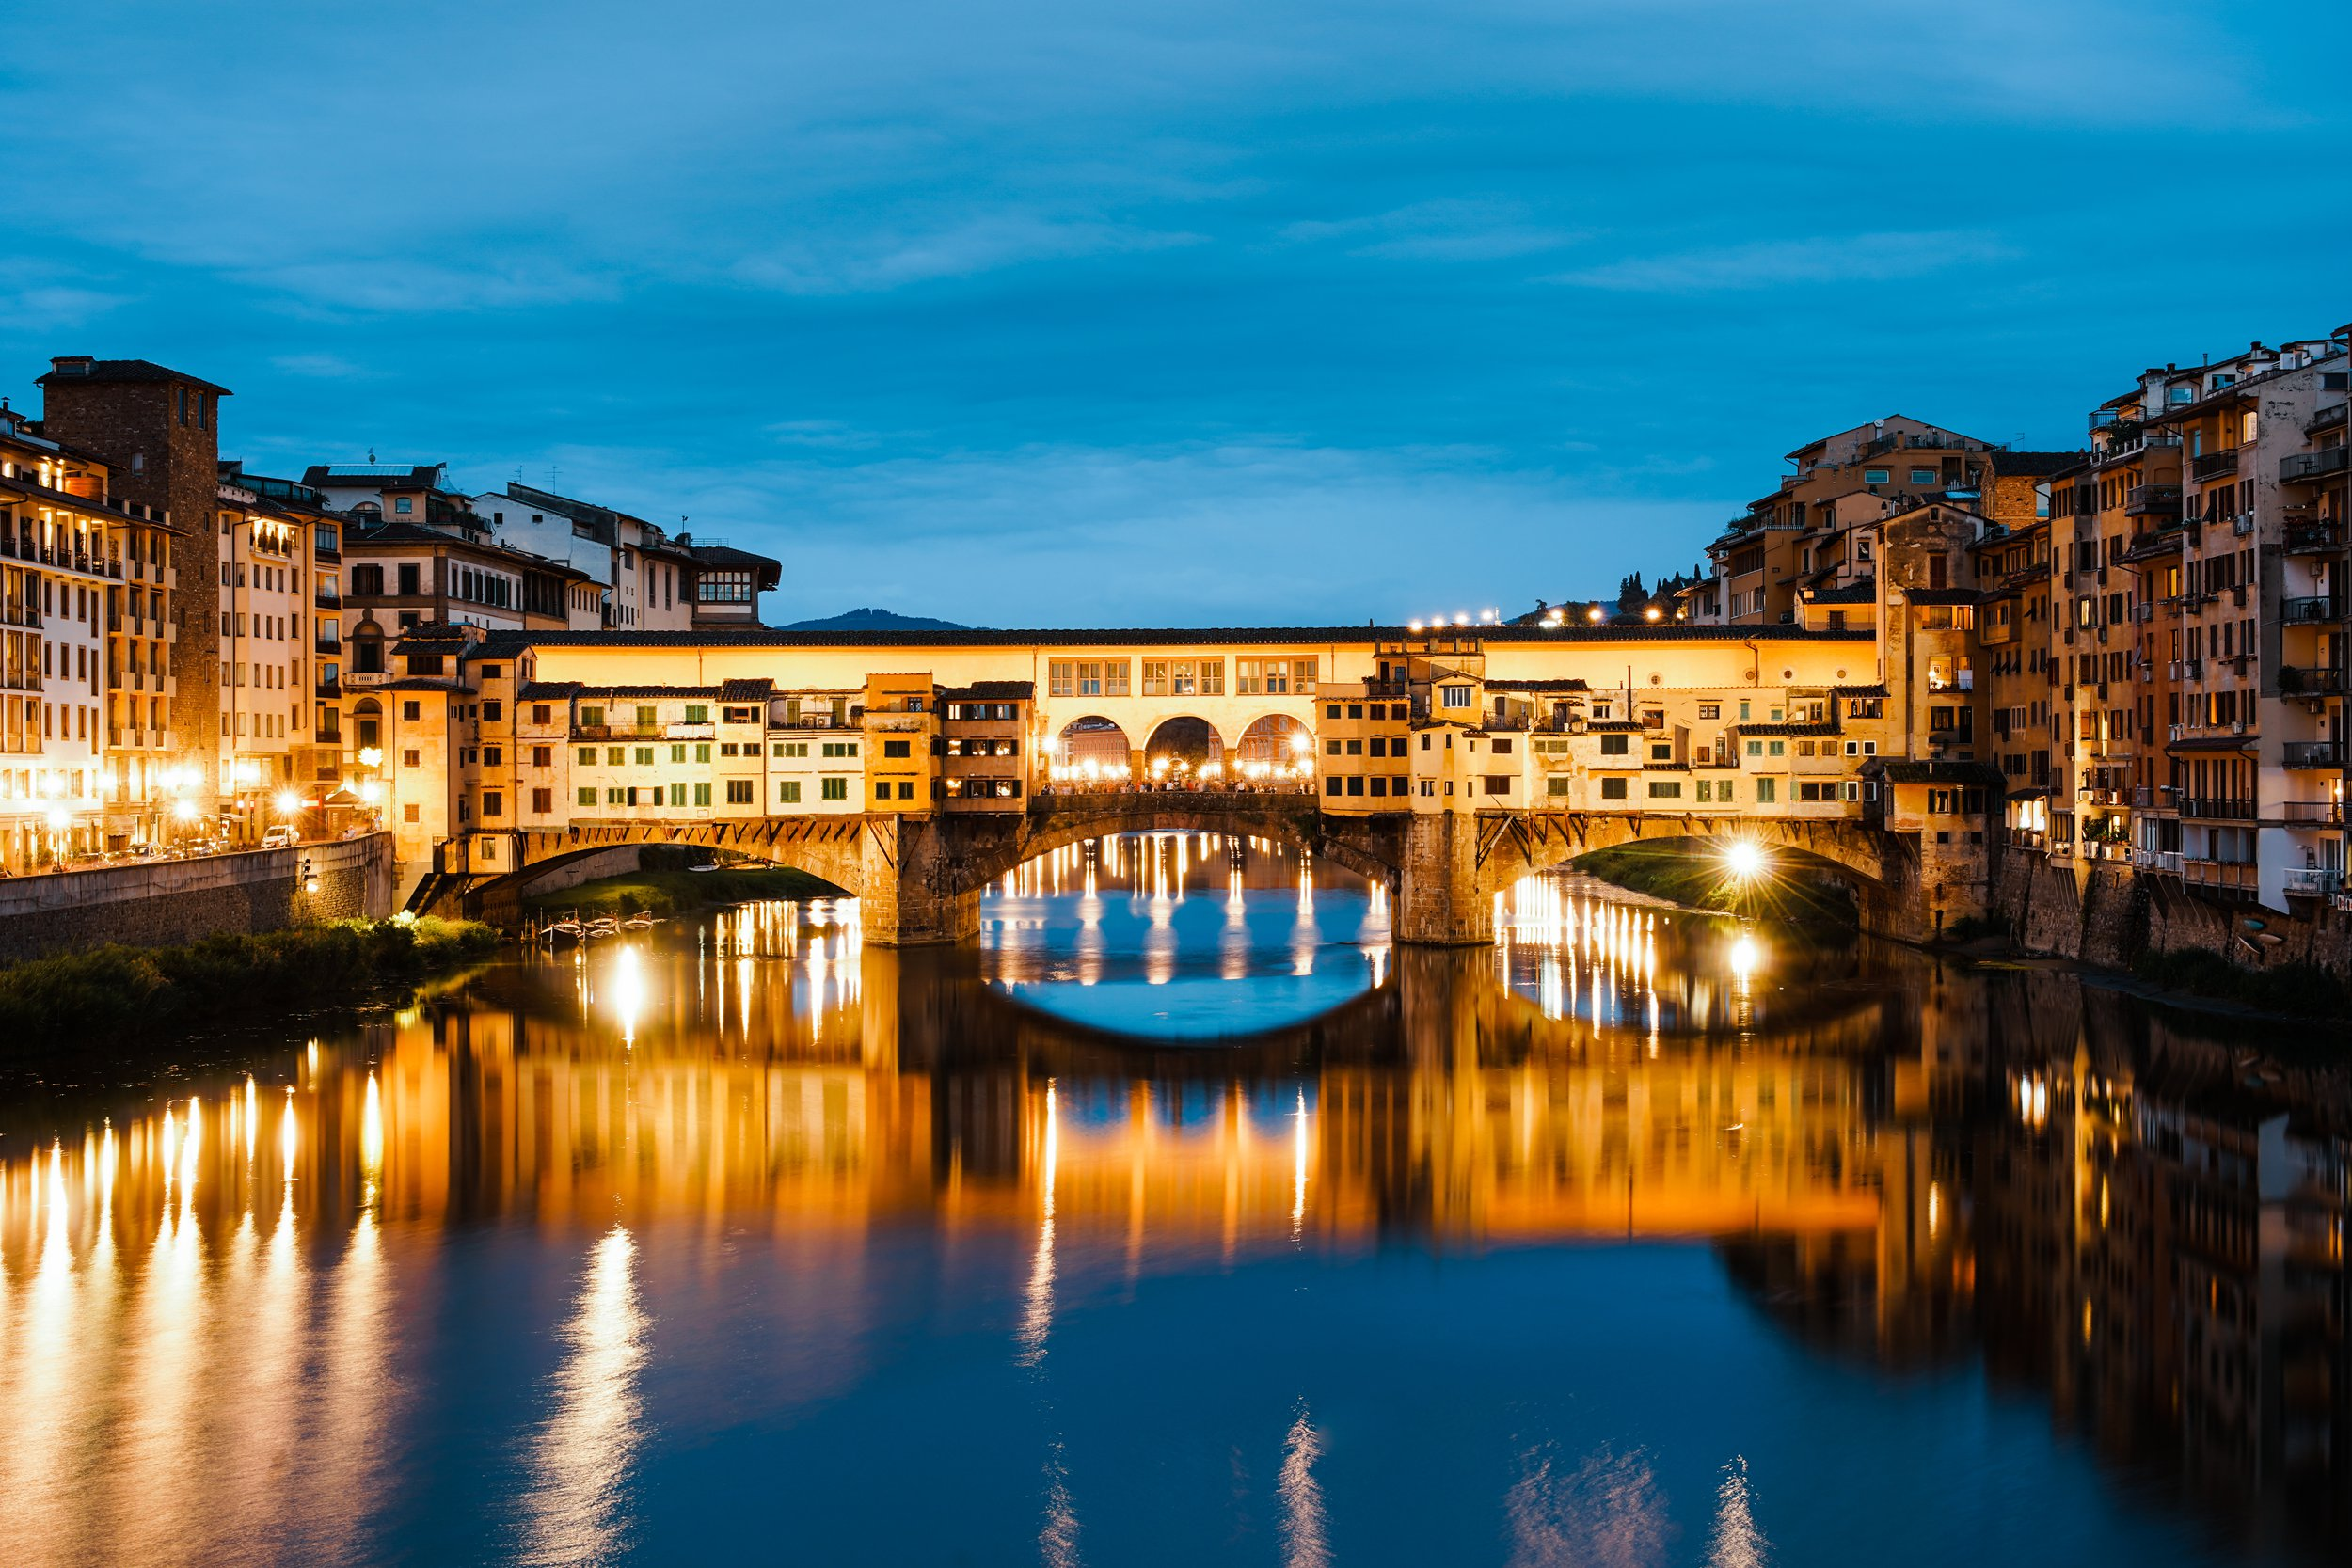 Ponte Vecchio. Florence, Italy. June 2018. Shot on Sony A7III and Sony 24-70mm f4 lens. Shot at 54mm. Shutter speed 13 sec. Aperture f/11. ISO 100.